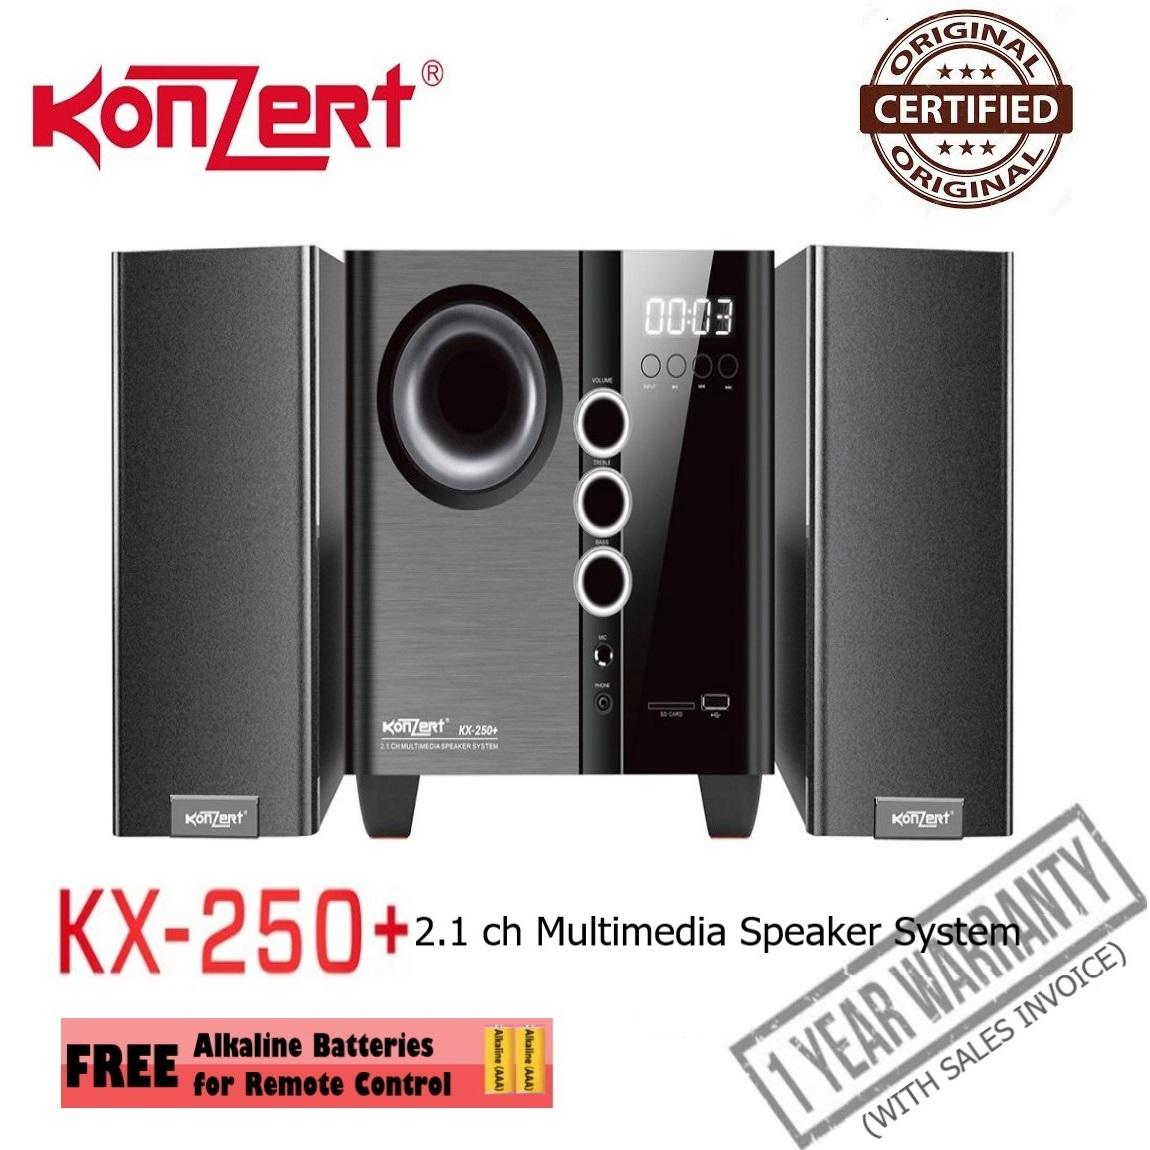 Konzert Philippines Price List Home Entertainment Figure 4 Suggested Twin Speaker Box And Wiring Kx 250 21 Channel Multimedia System